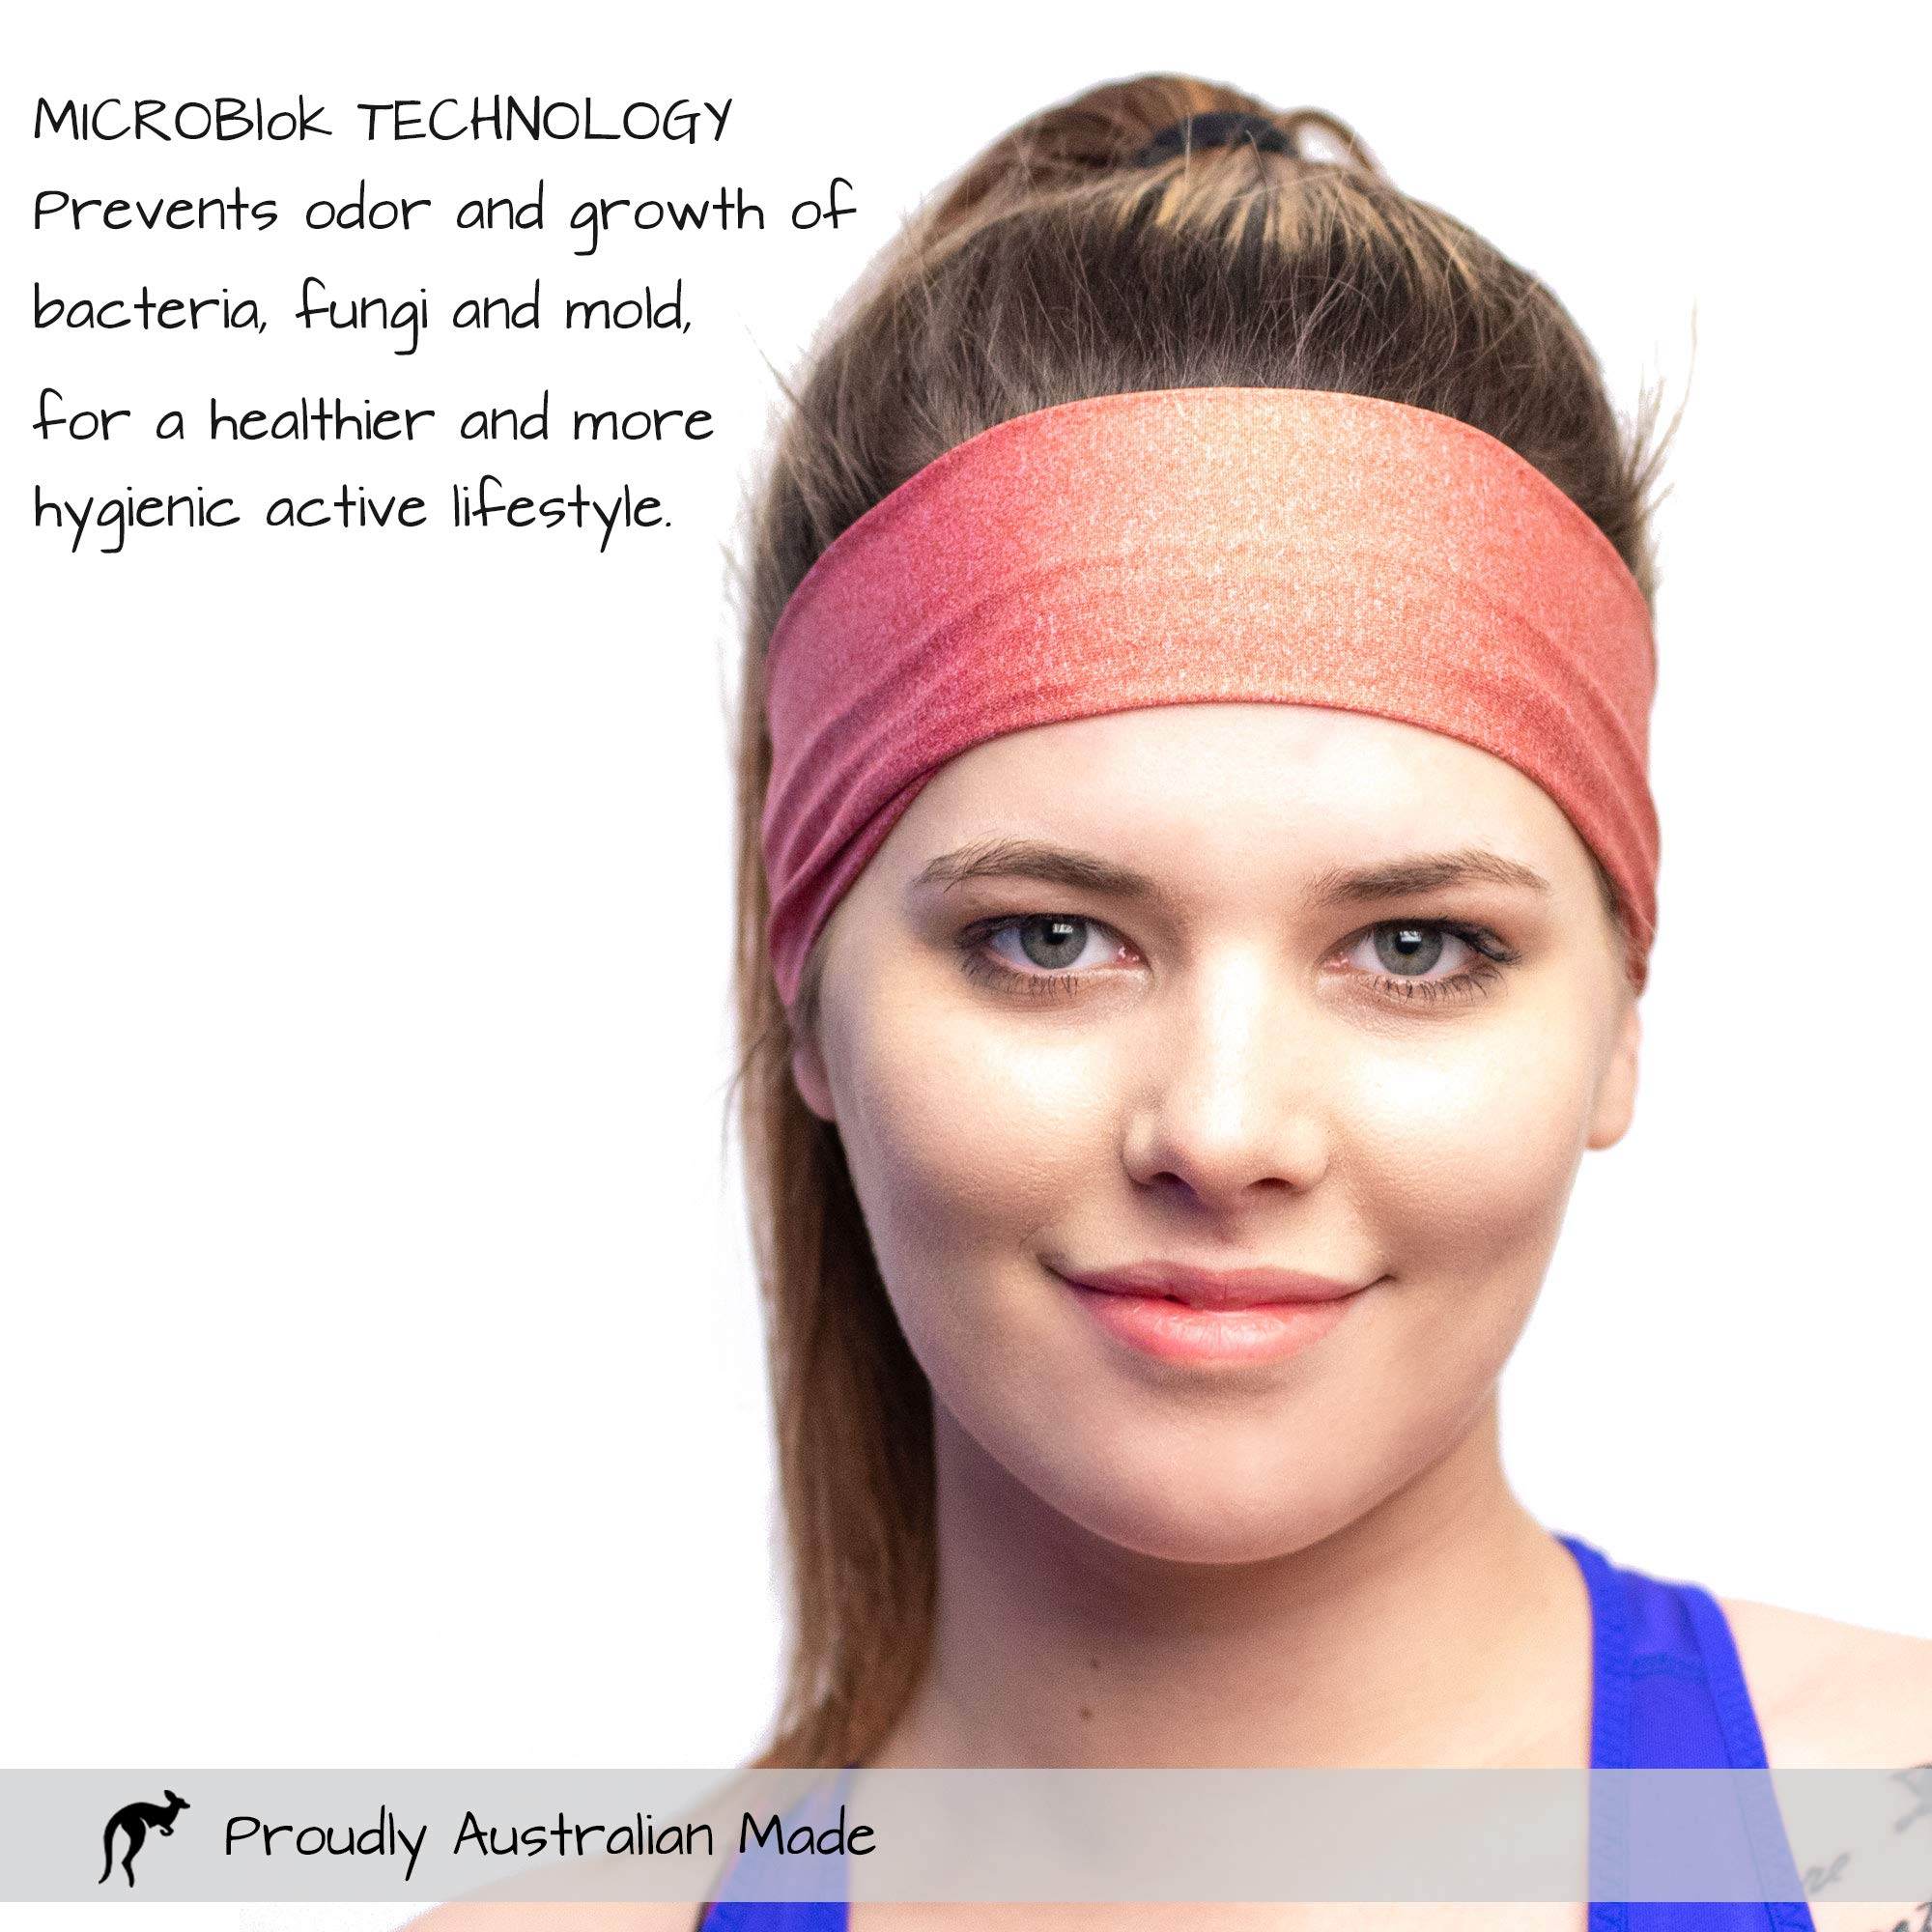 Red Dust Active Sports Headband - Lightweight, Wide & Moisture Wicking - The Ideal Red Running Sweatband - Designed for Women by Red Dust Active (Image #4)